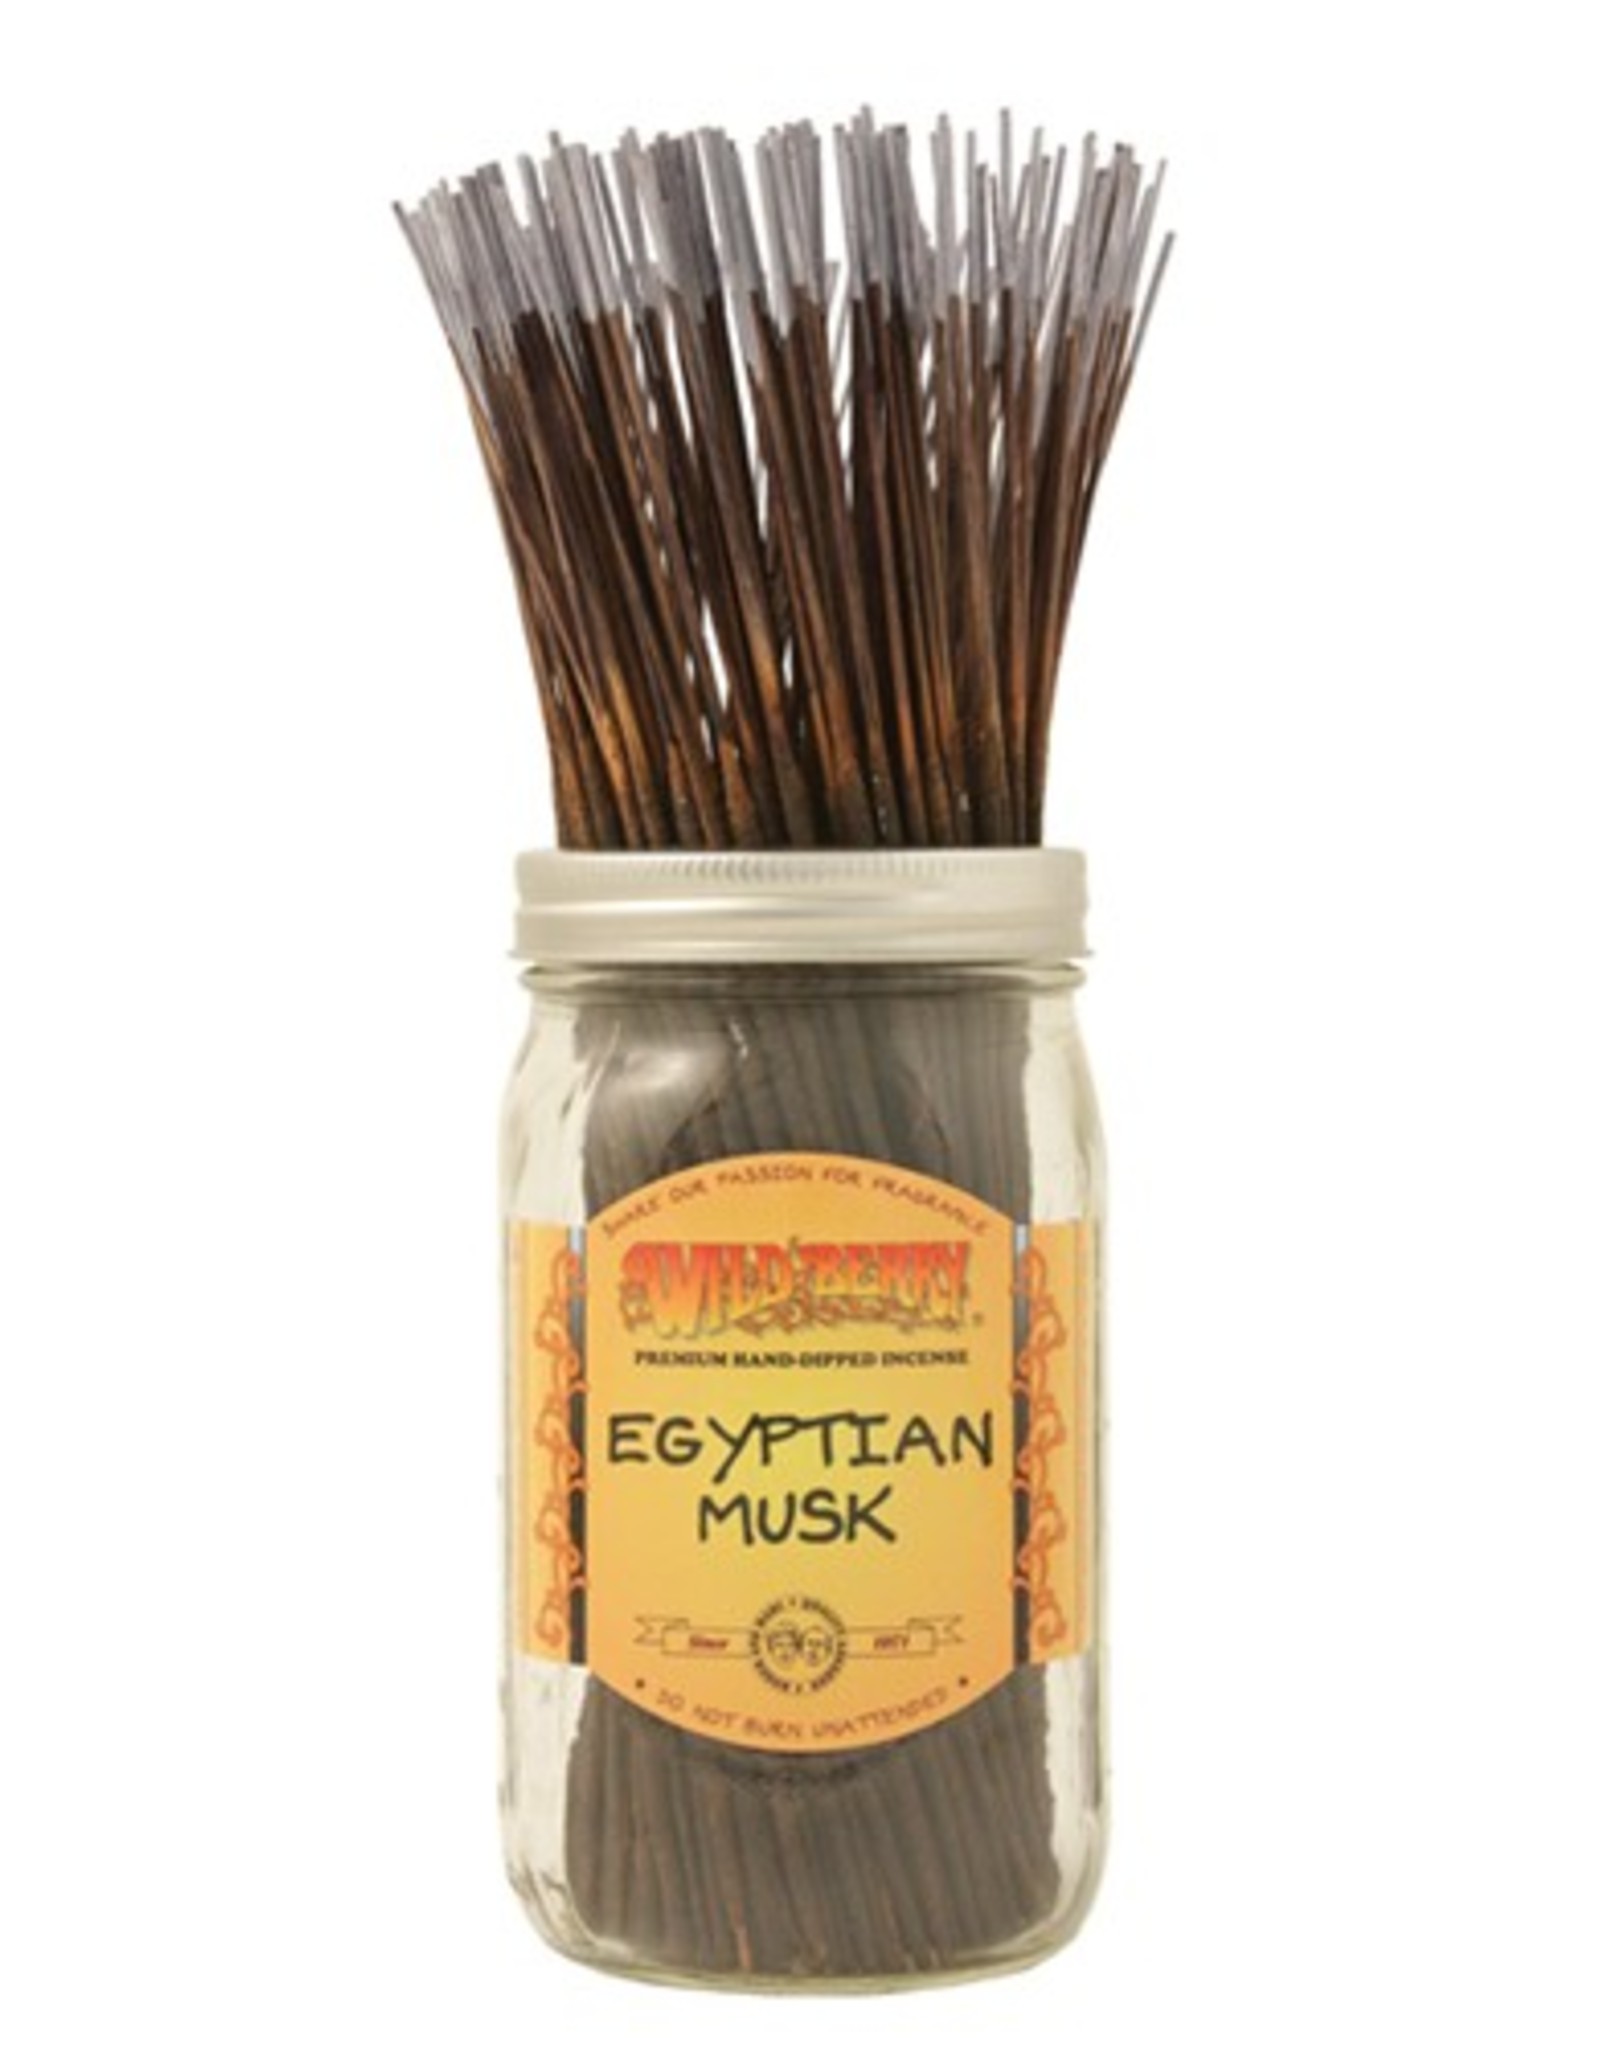 WILDBERRY-Egyptianm Musk Incense